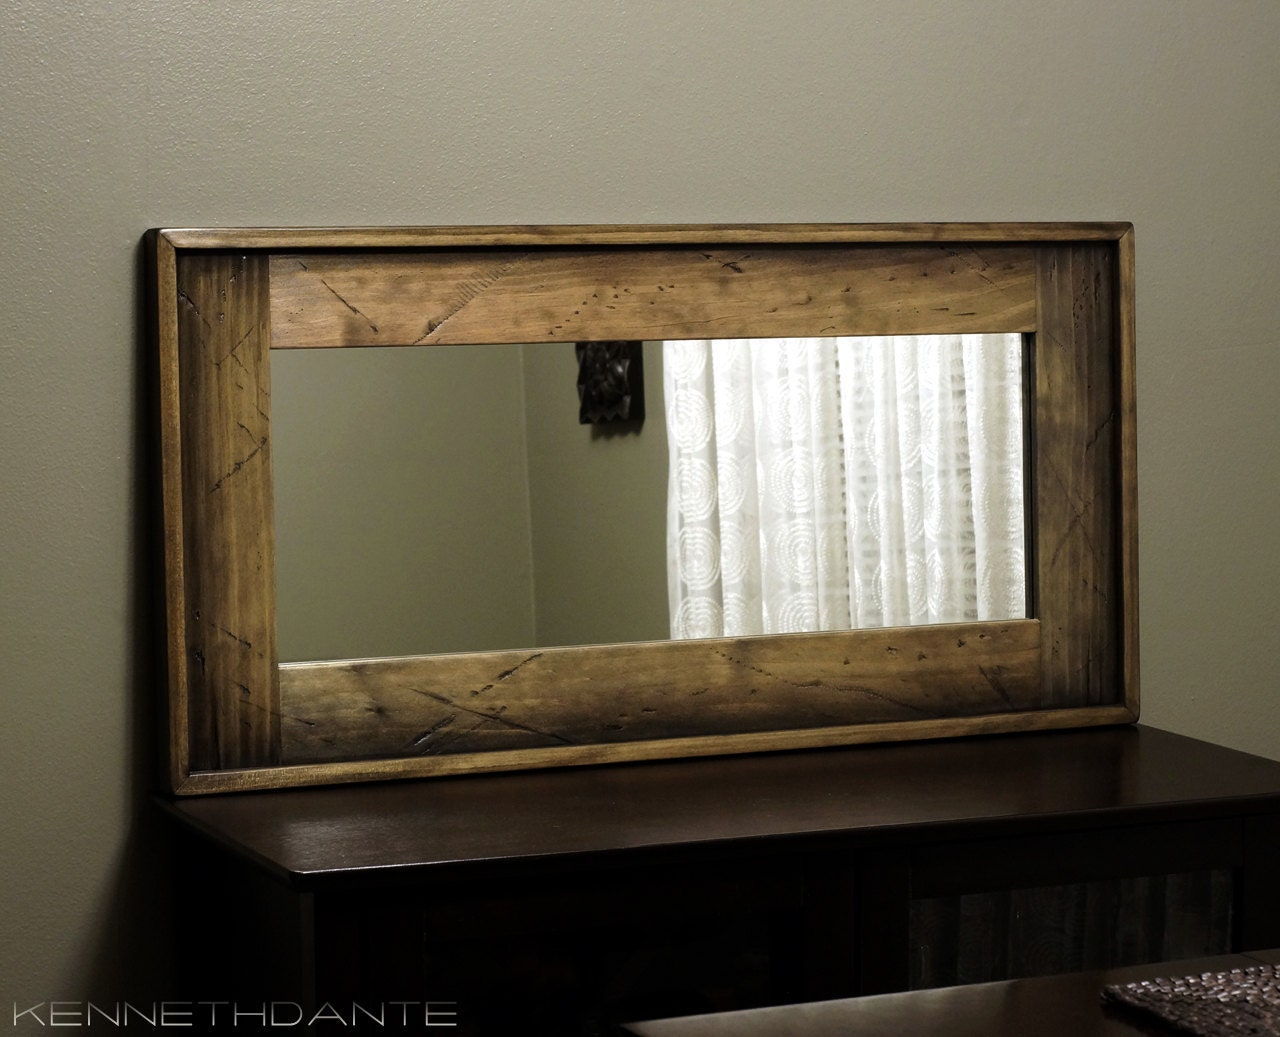 Modern Rustic Wood Mirror Distressed Barn Bathroom By Kennethdante: Distressed Wood Framed Mirror In Brown Blue Red By